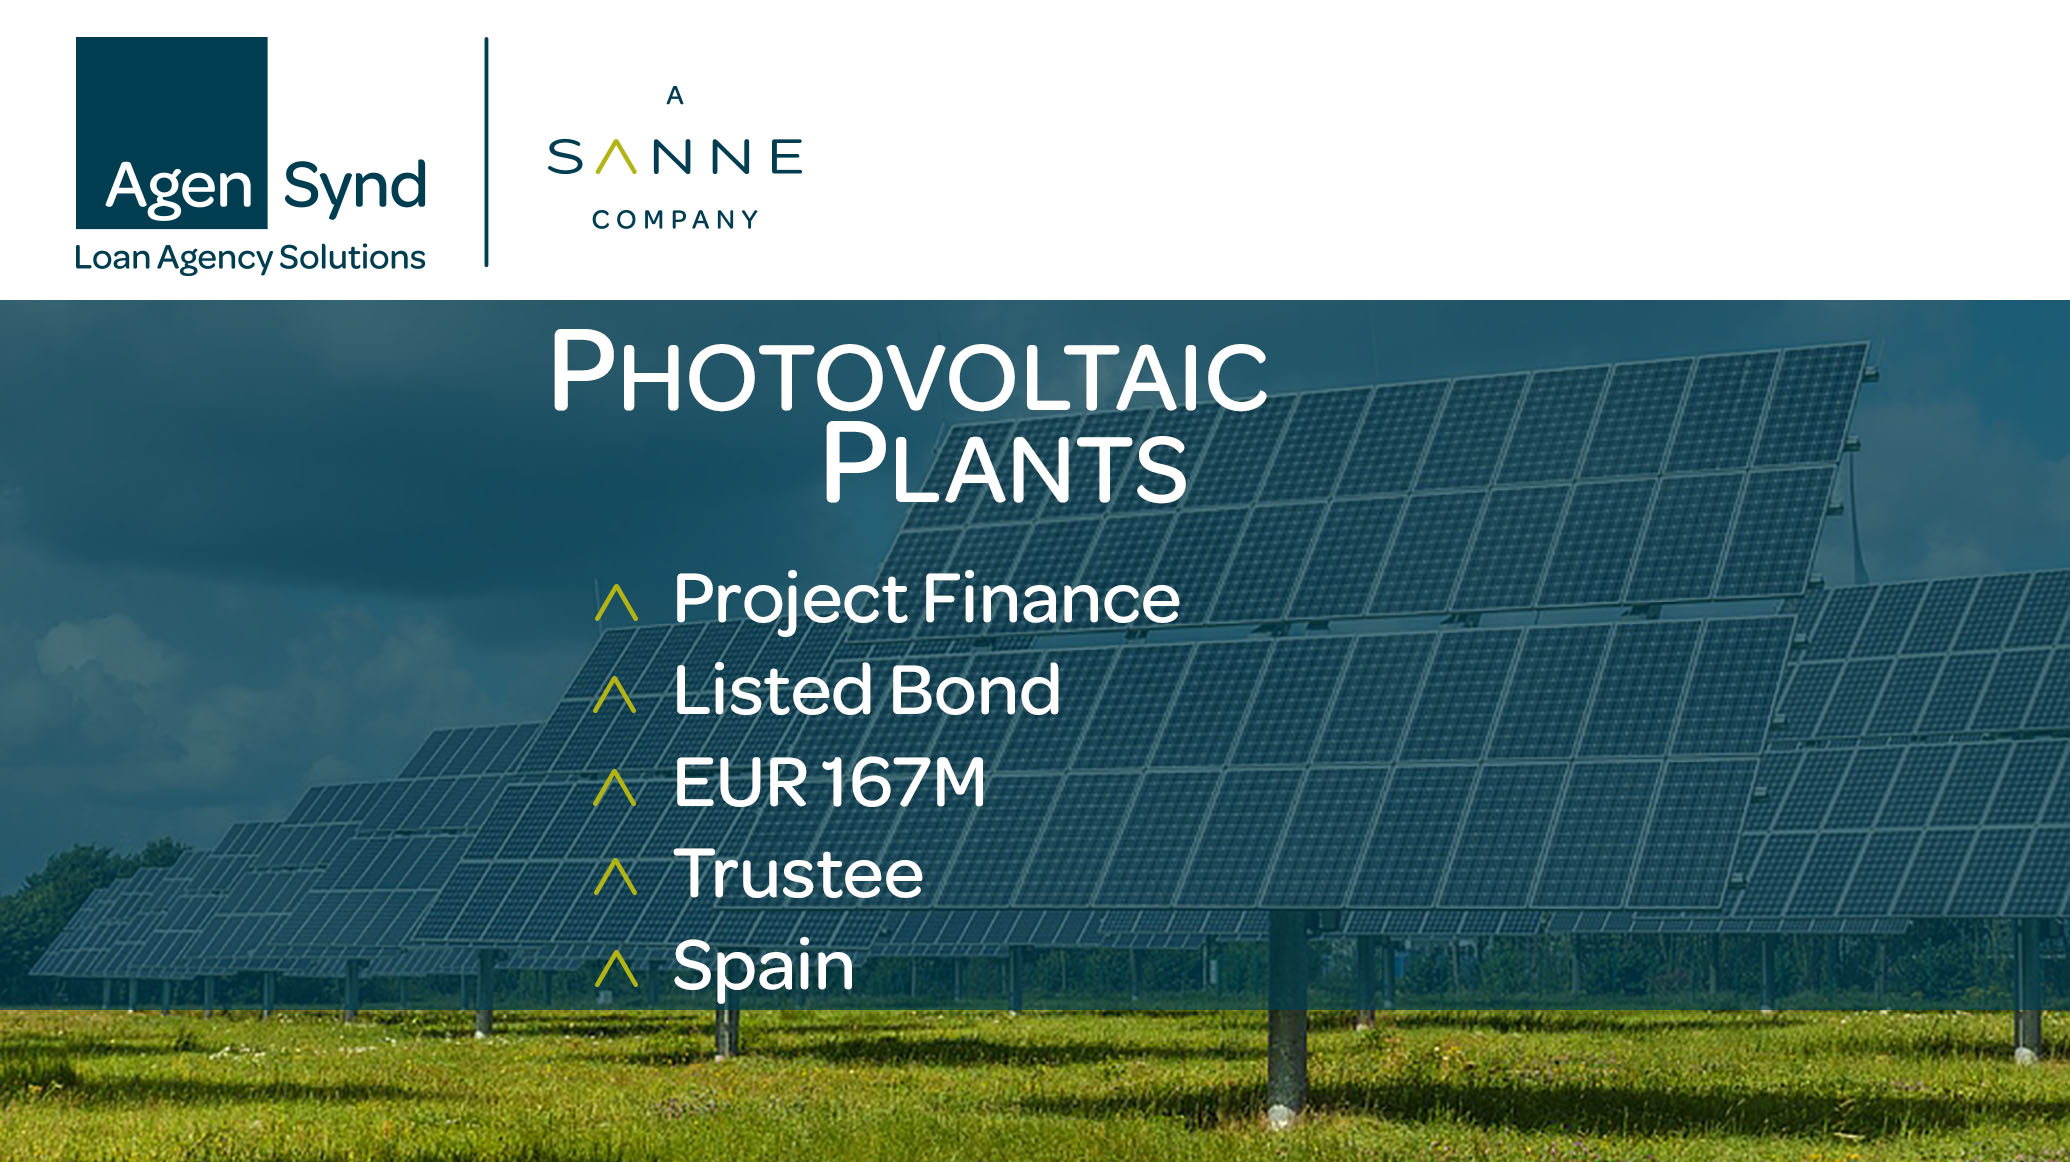 AgenSynd Photovoltaic Plants